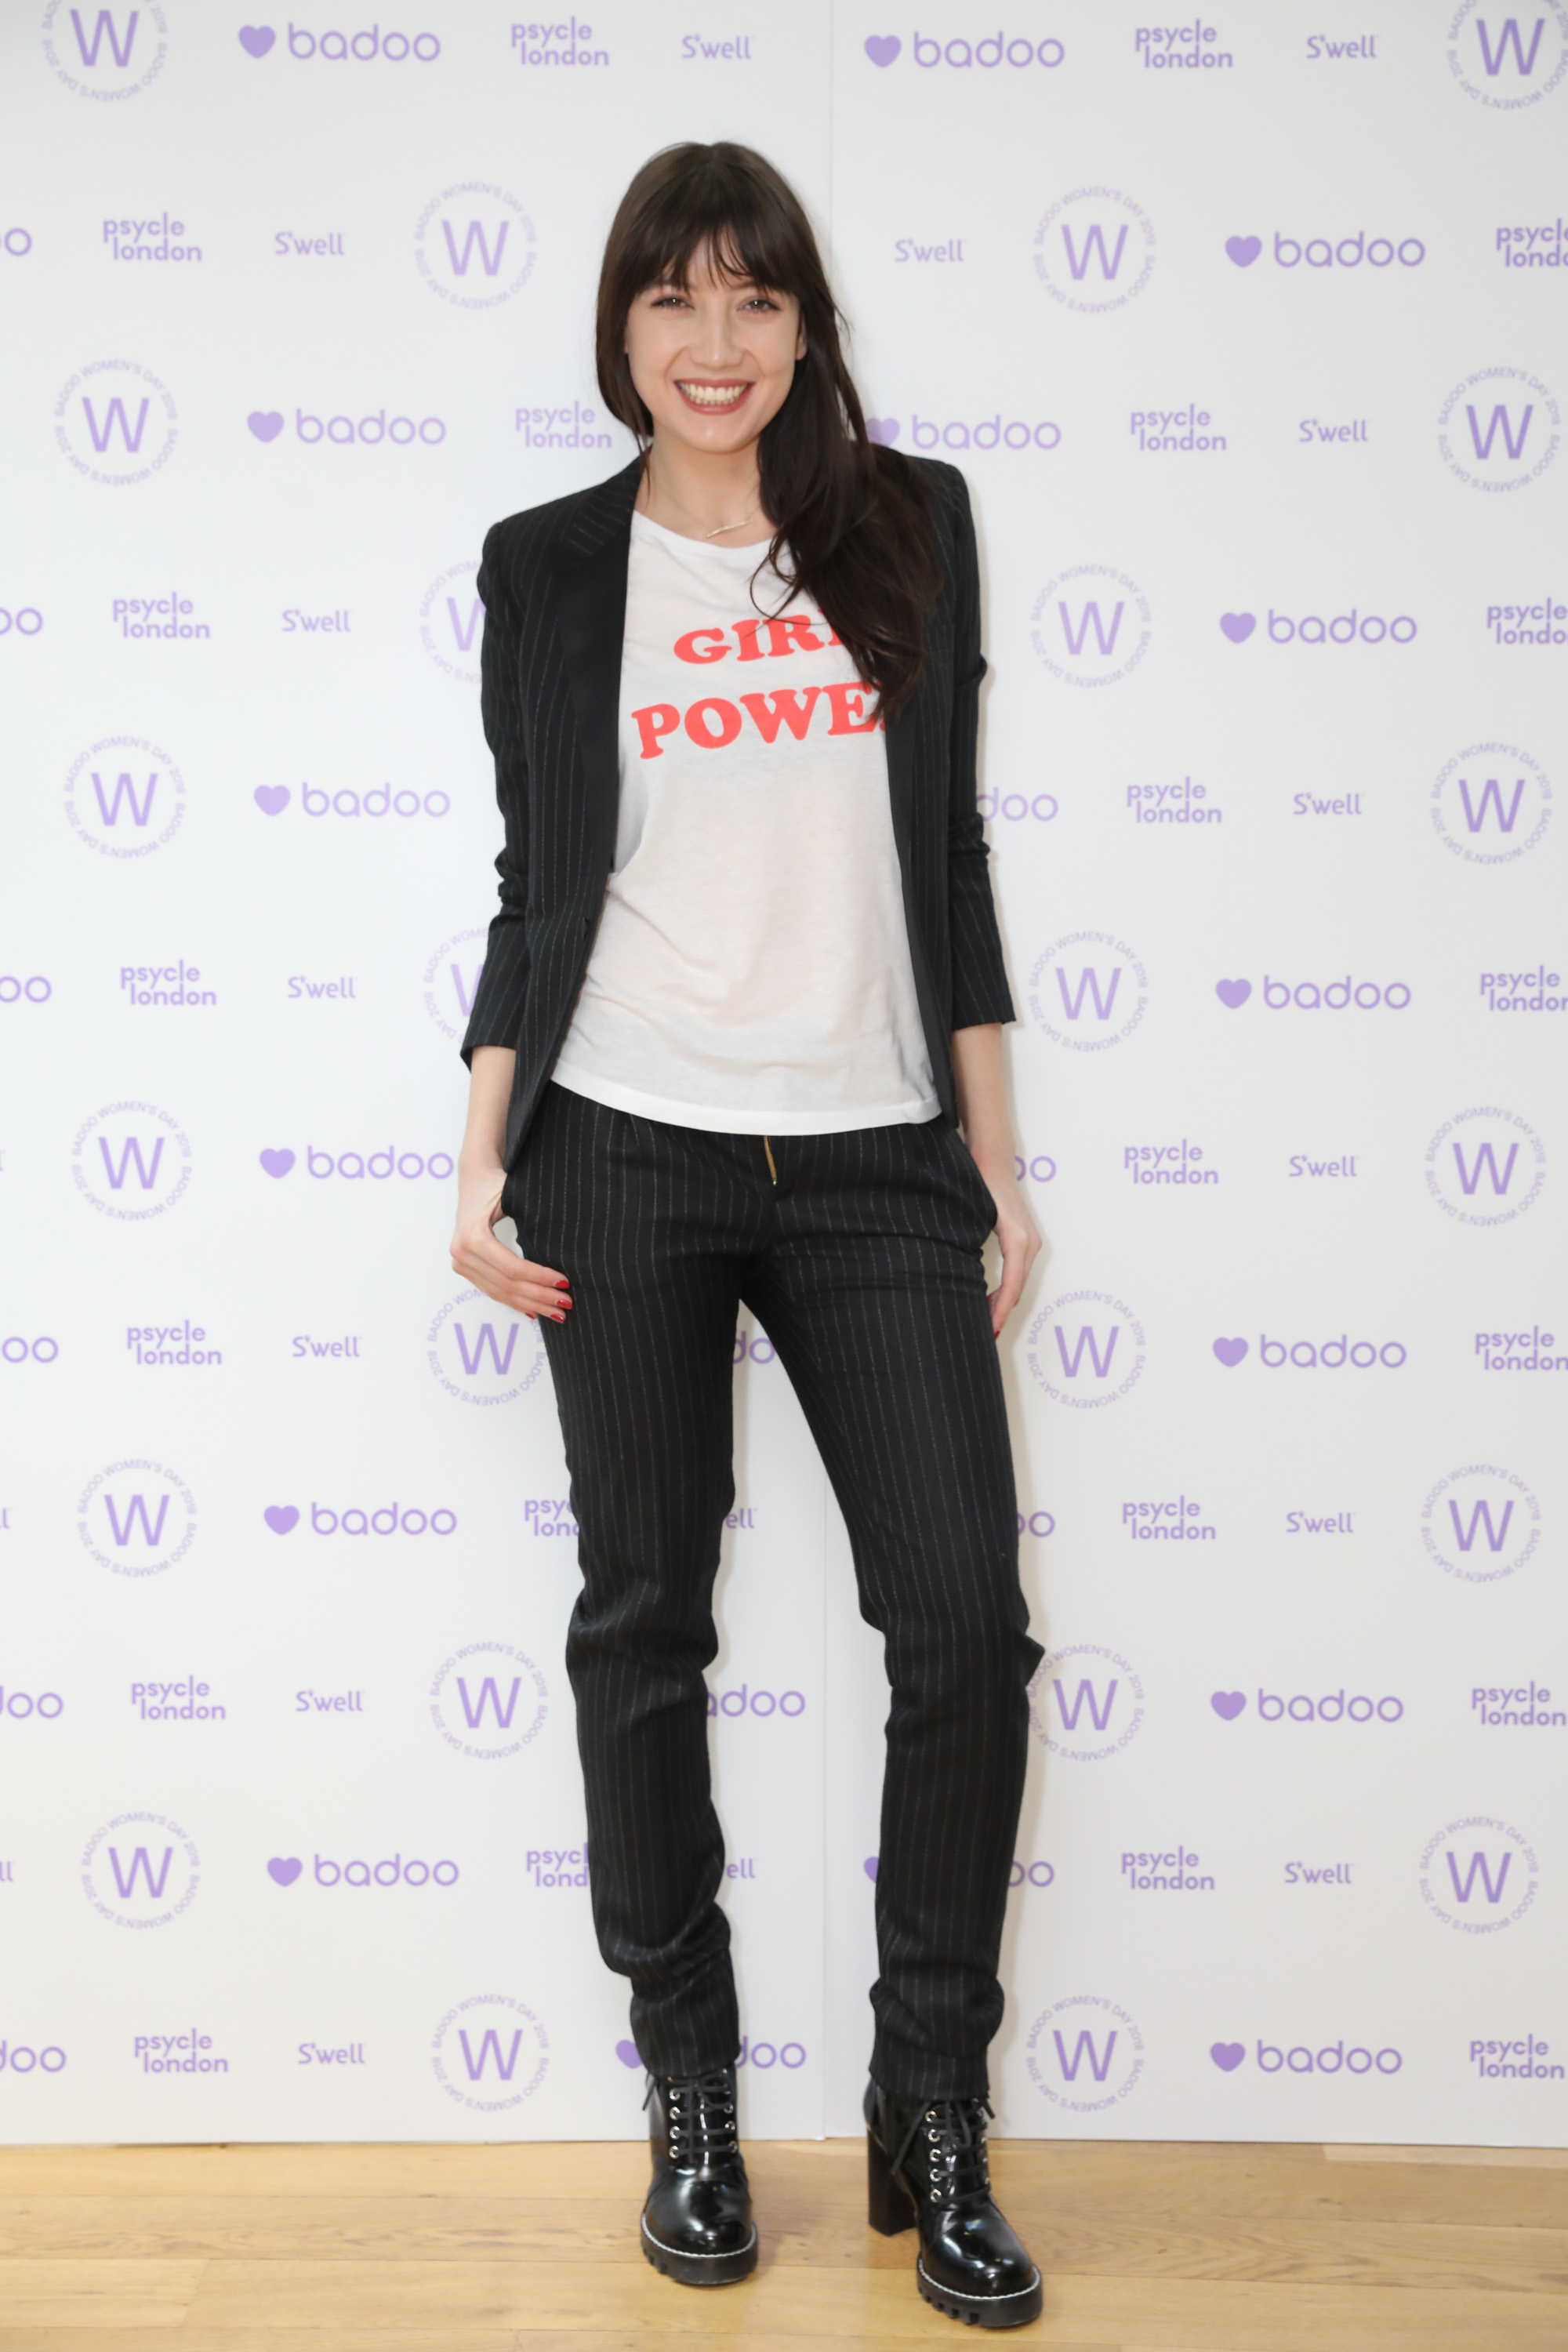 Daisy Lowe - model and founder of Femme podcast